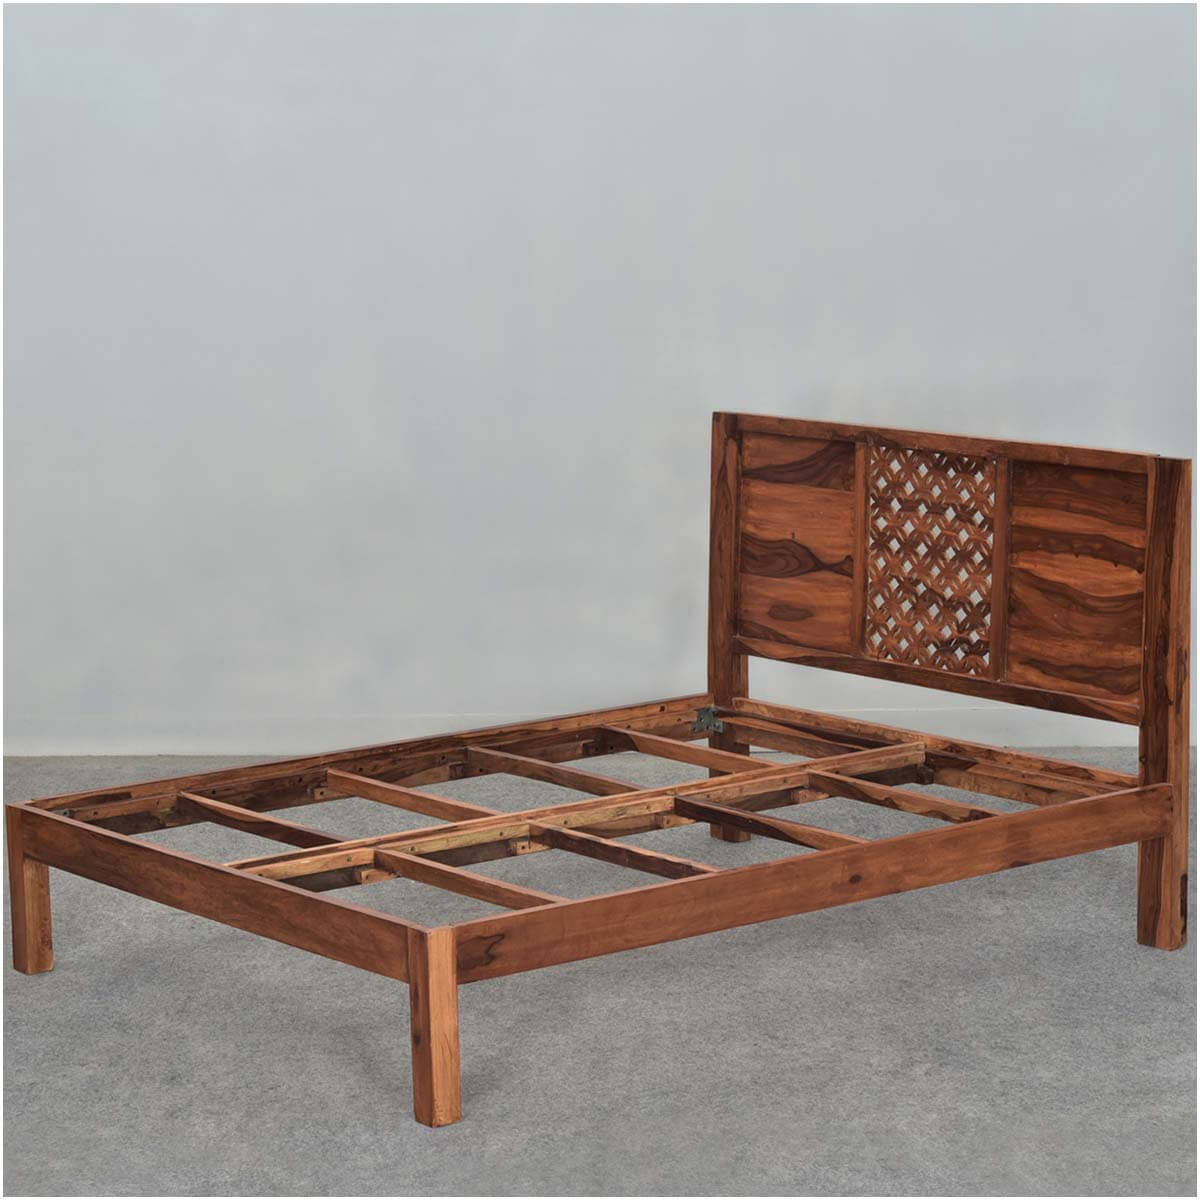 diamond lattice solid wood rustic platform bed frame w headboard